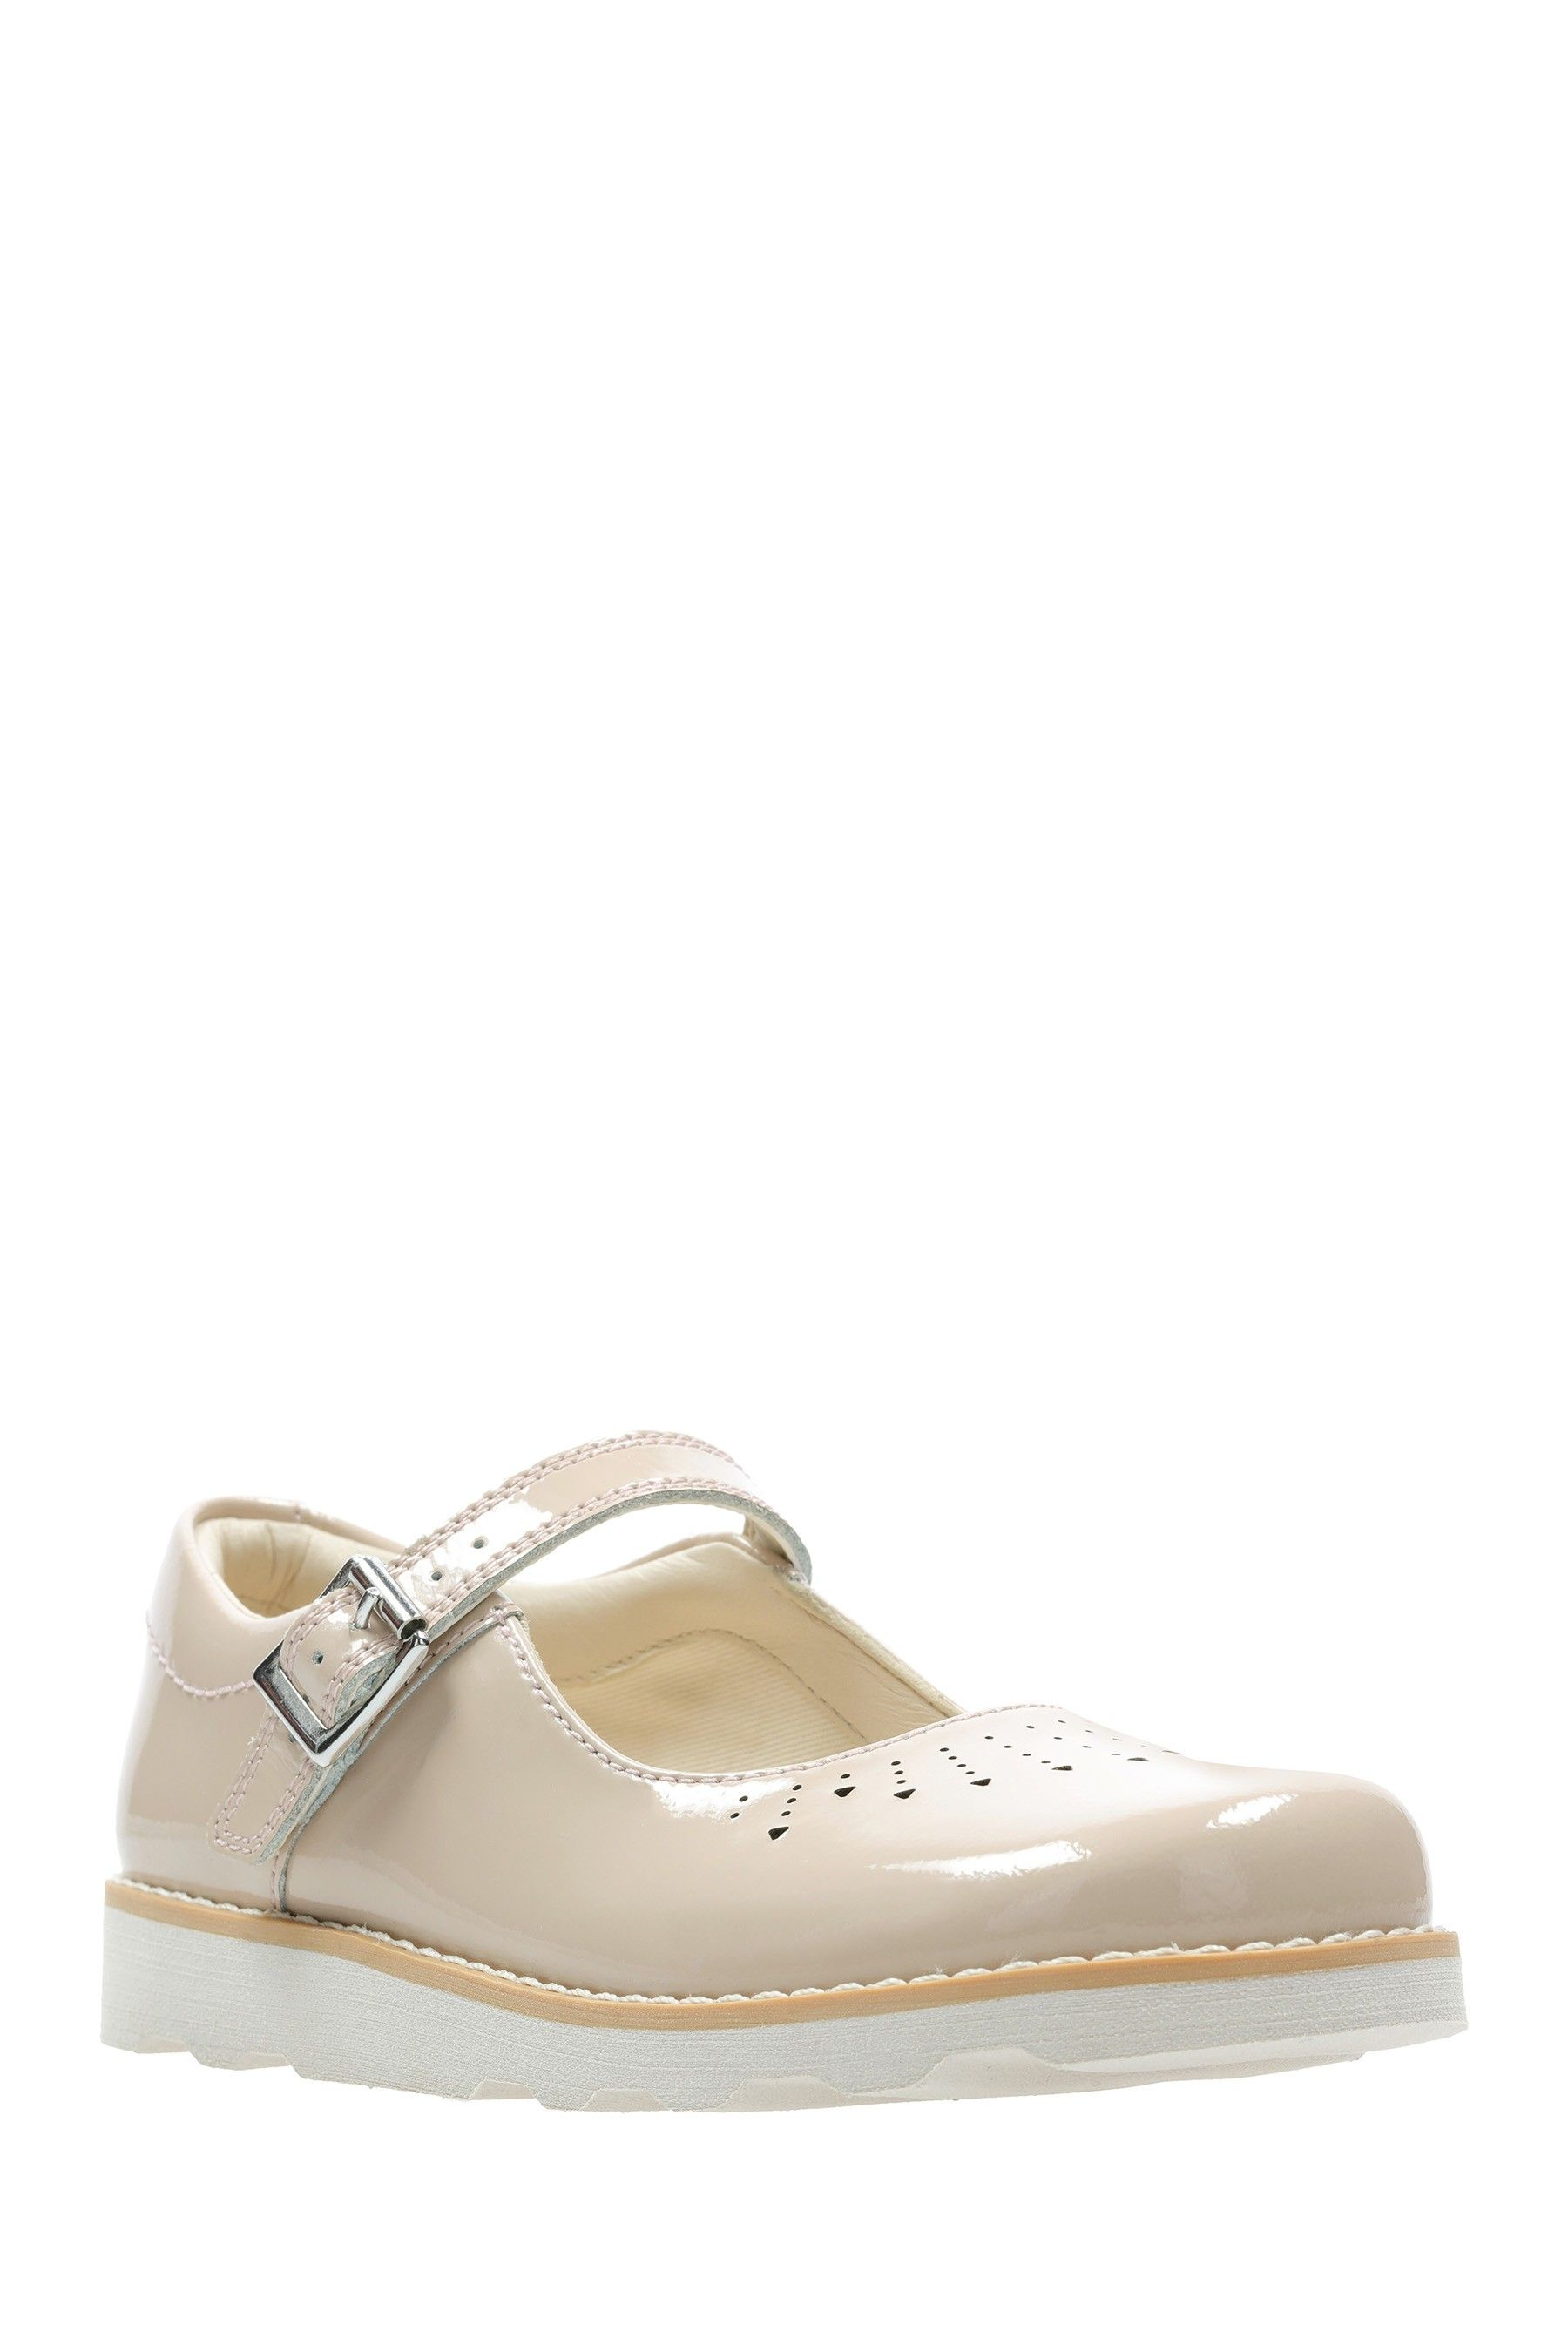 44ed1704e1f Girls Clarks Nude Crown Jump K Shoe - Nude in 2019